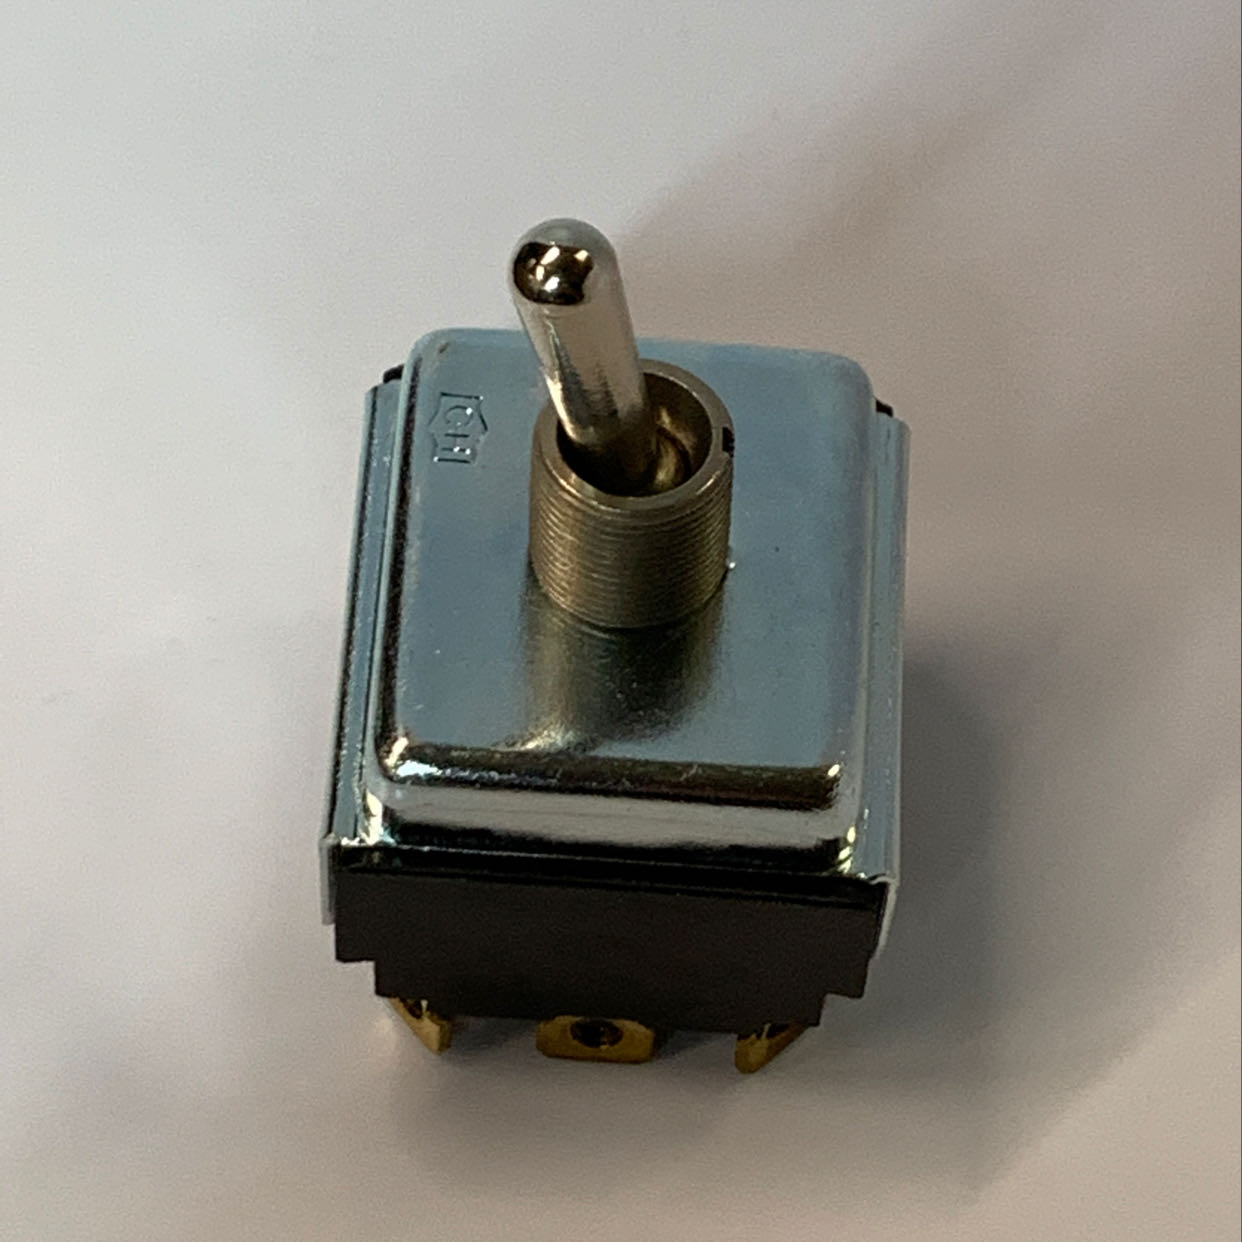 Eaton 4Pdt 7692K13 Toggle Switch